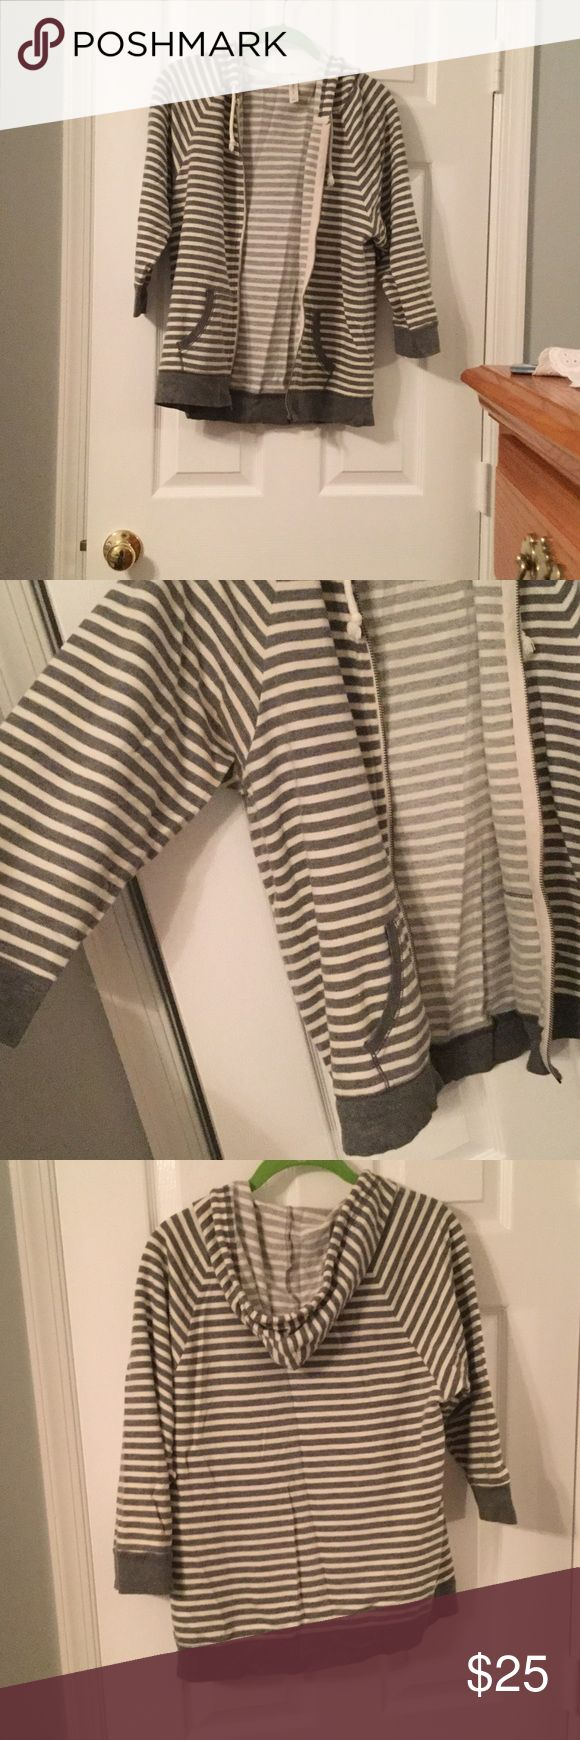 Fashionable 3/4 sleeve striped zip up Super cute lightweight zip up! Perfect for any day out including a coverup at the beach! ⭐️PRICE IS NEGOTIABLE⭐️ GAP Tops Sweatshirts & Hoodies